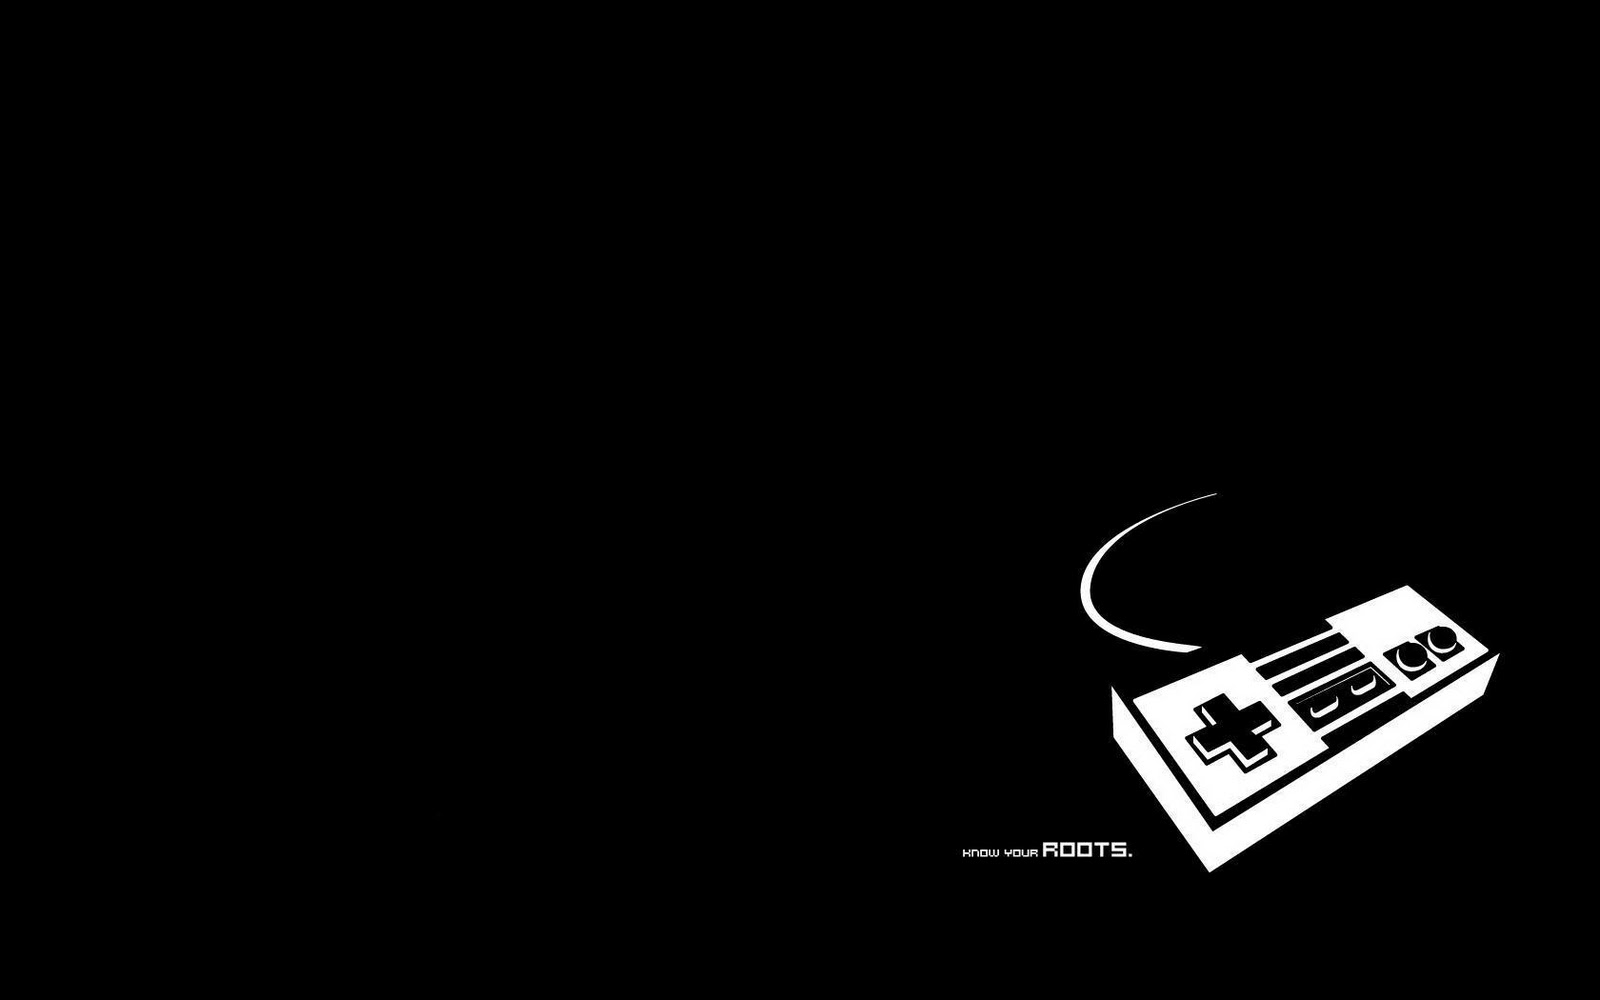 dark desktop wallpaper atari space invaders desktop wallpaper 1600x1000